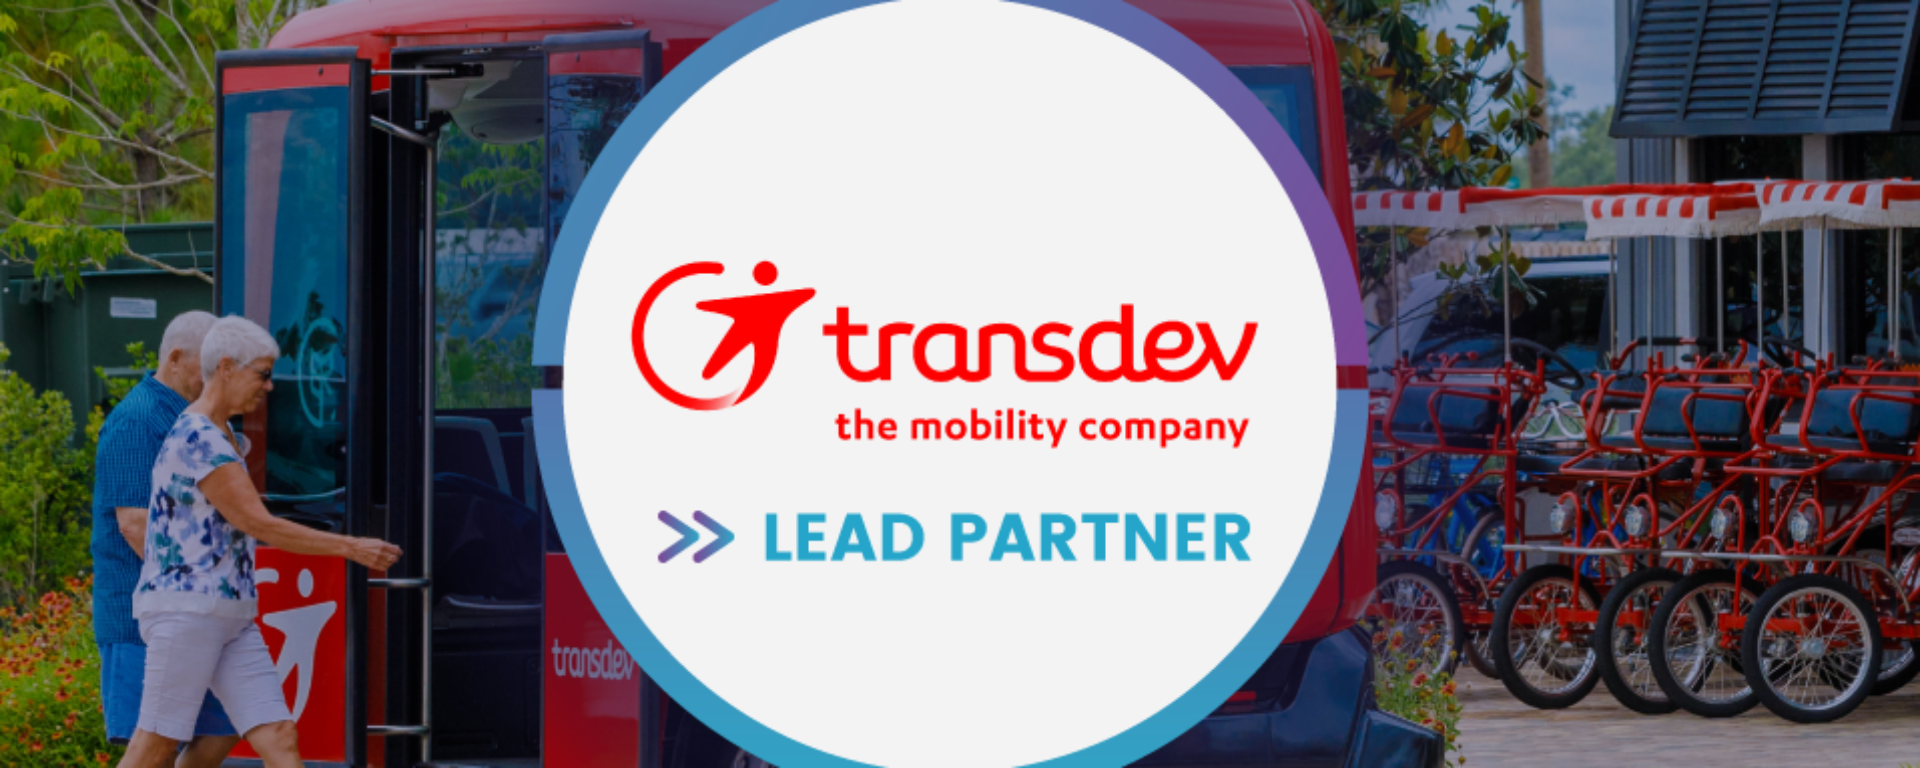 LaCOMOTION los angeles evenement event transdev partenaire majeur lead partner mobilité future the mobility company